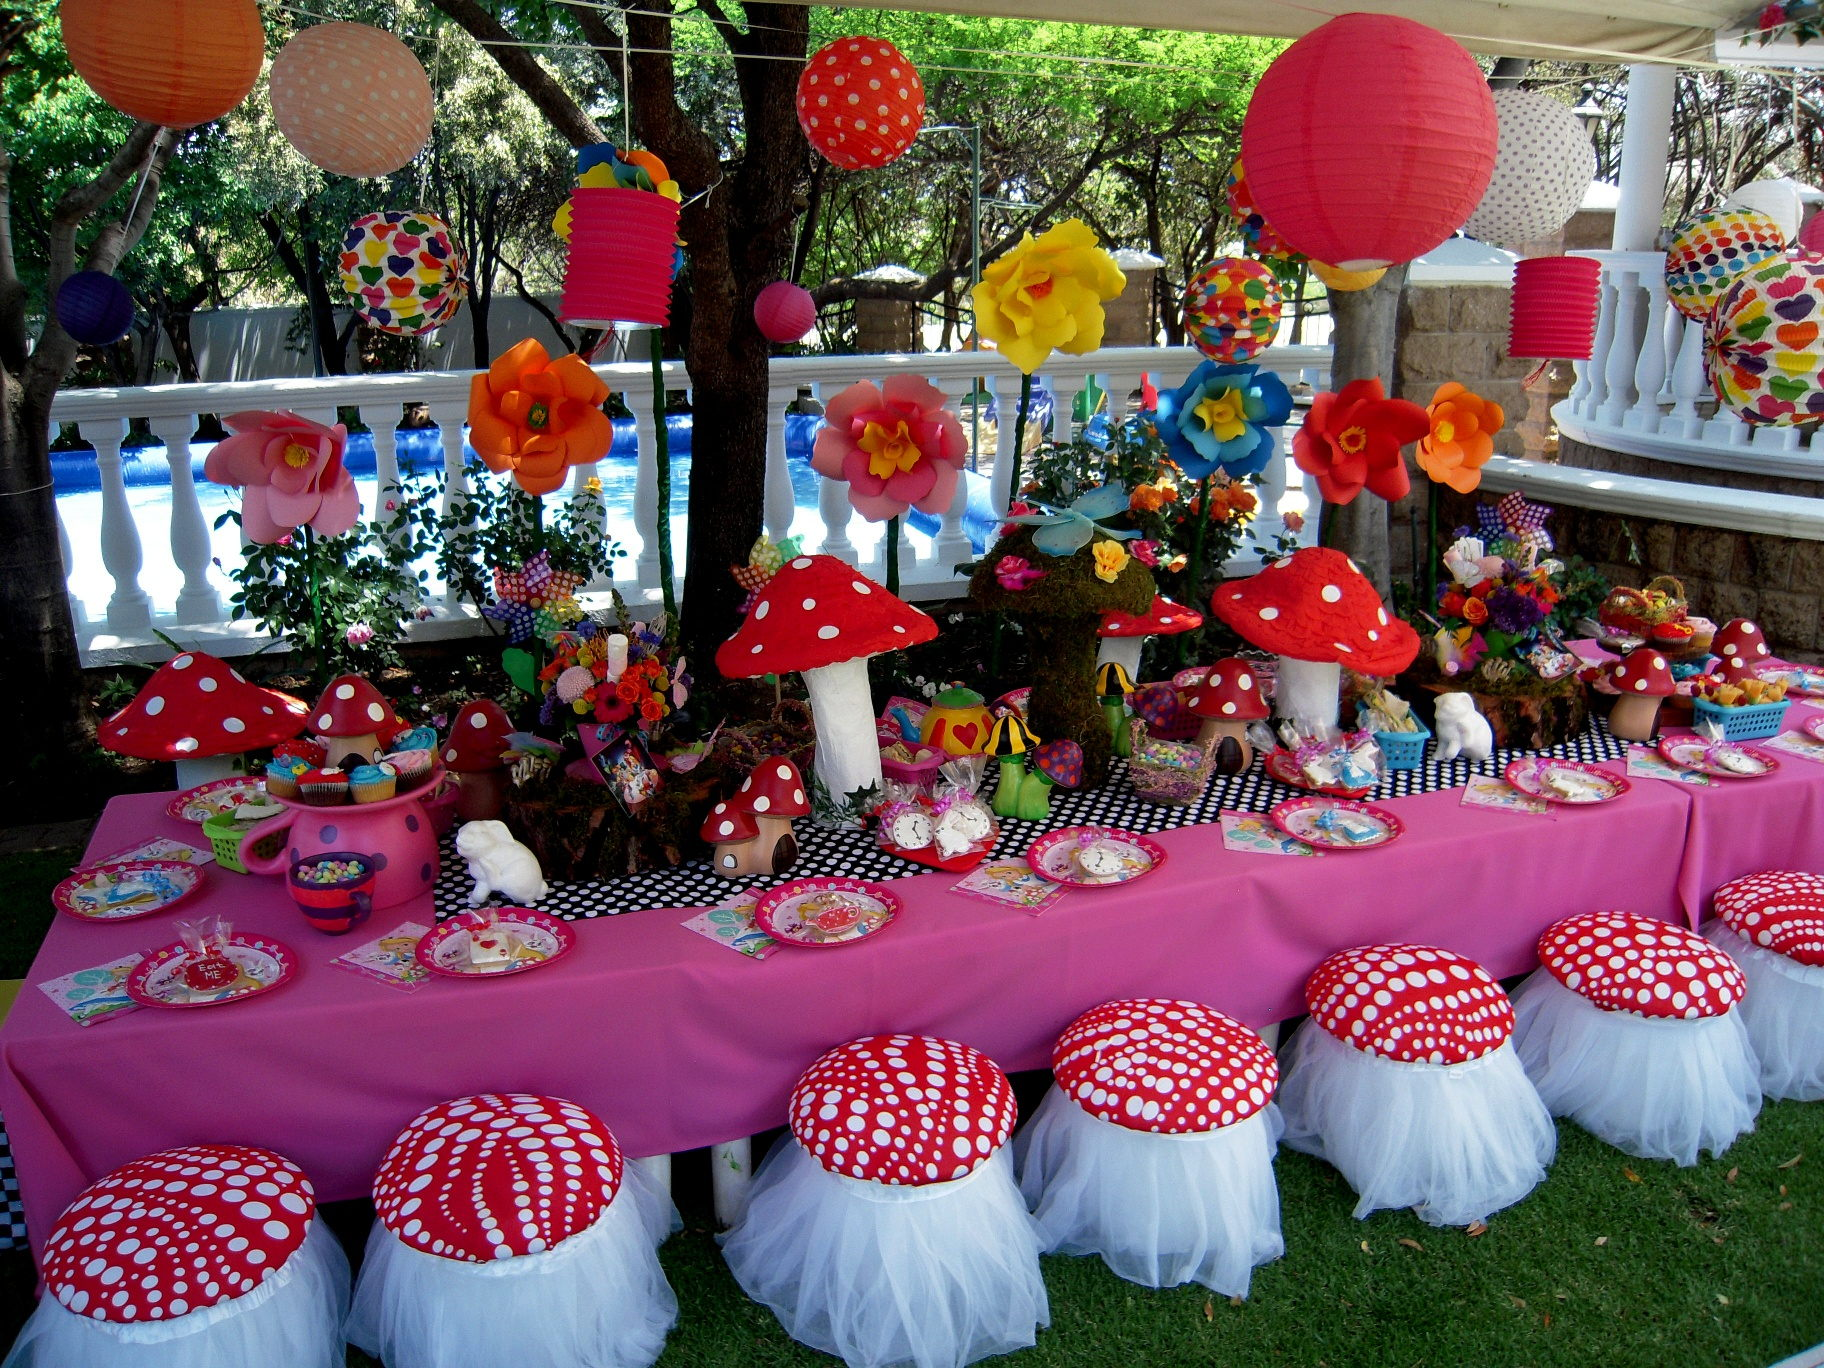 Alice In Wonderland Party Decorations Part - 21: Alice In Wonderland Kids Party Table Decor